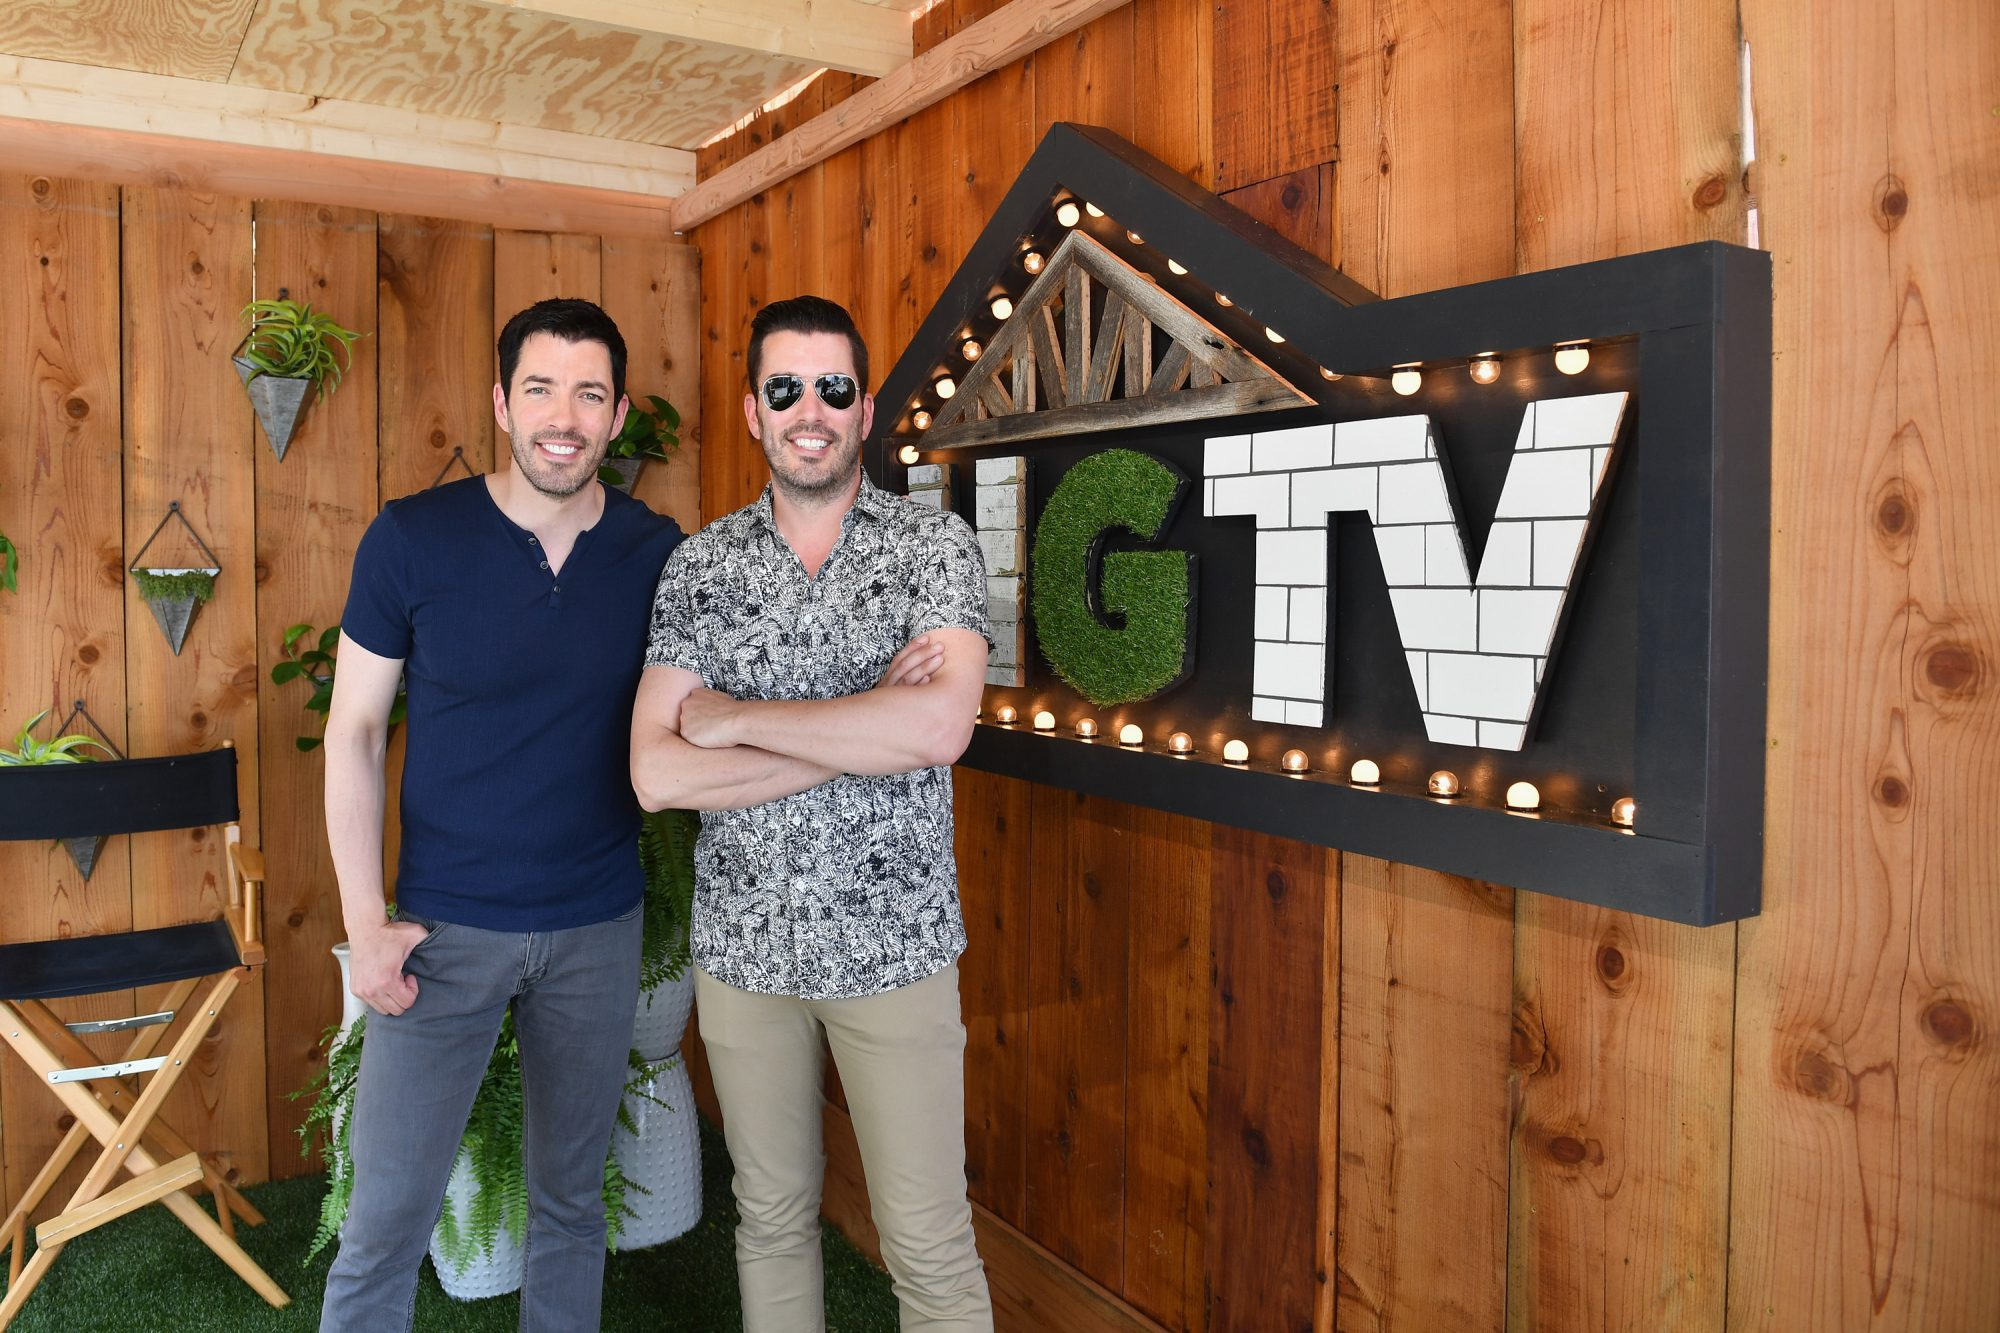 Property Brothers by HGTV Sign